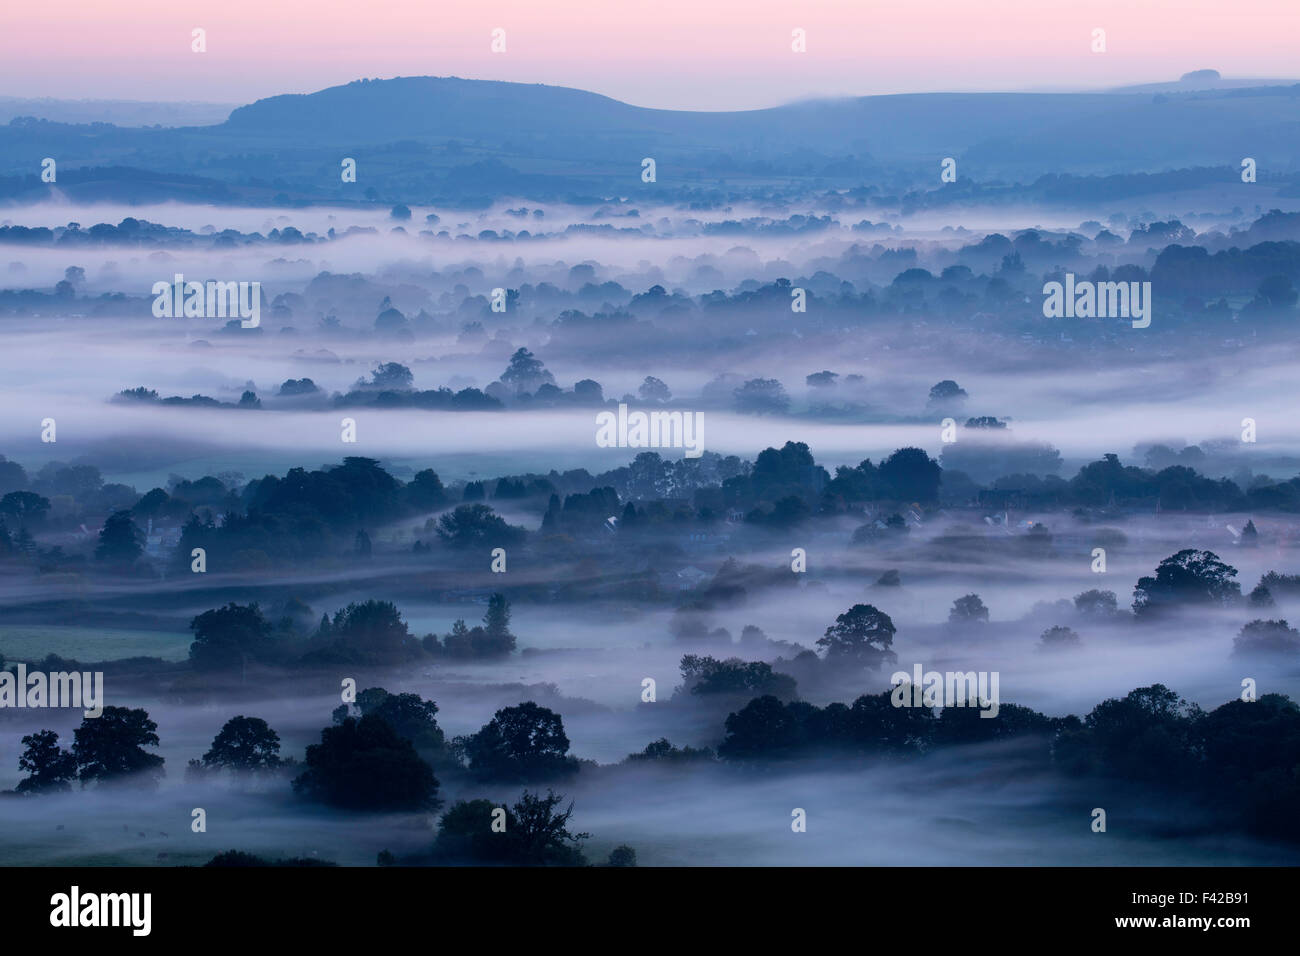 a misty morning in the Blackmore Vale, Dorset, England, UK - Stock Image